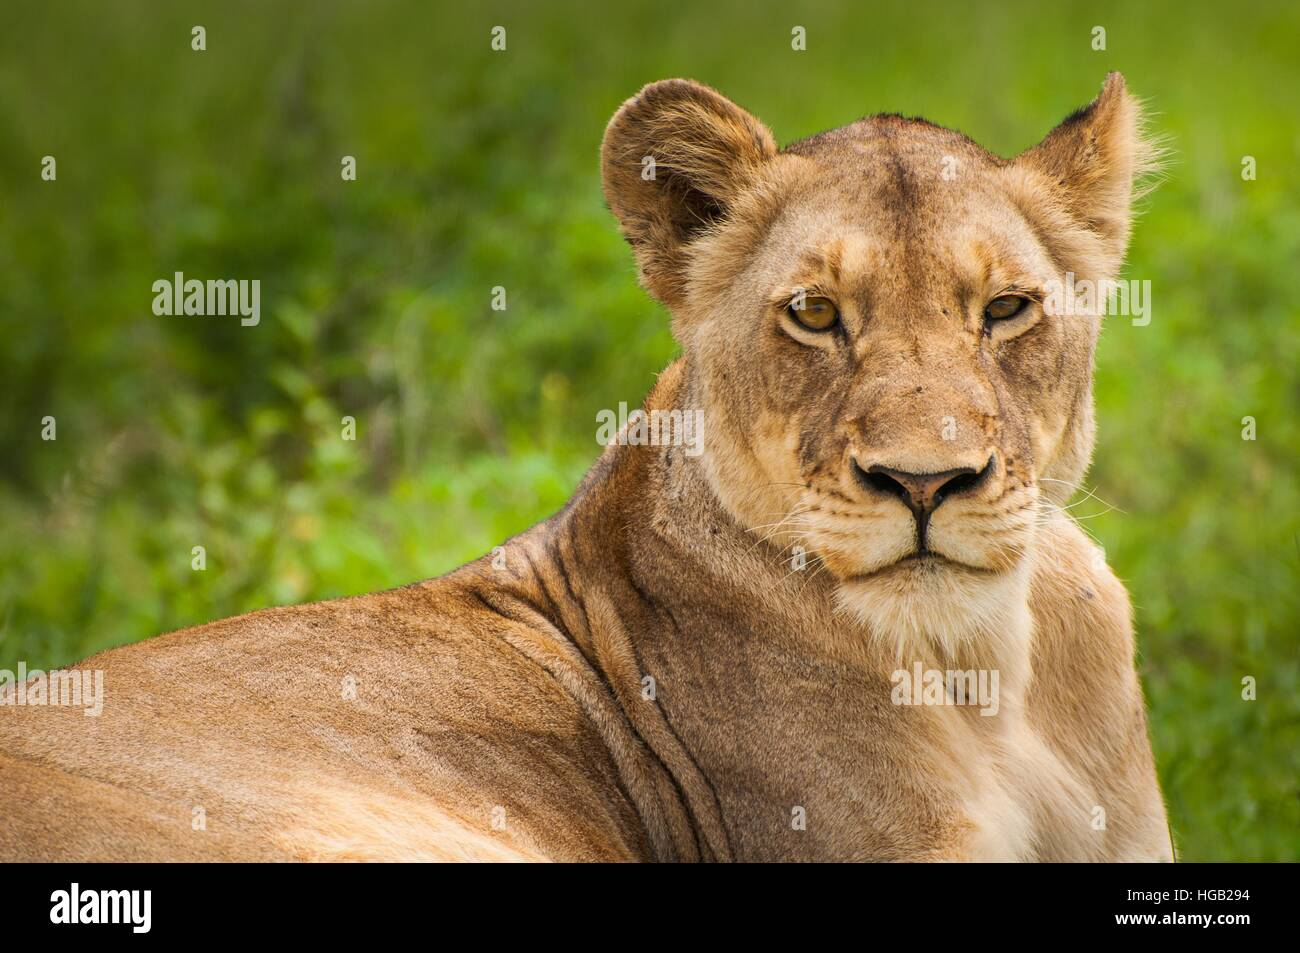 Lion  living in the forest lonely.It is a proved lion. - Stock Image